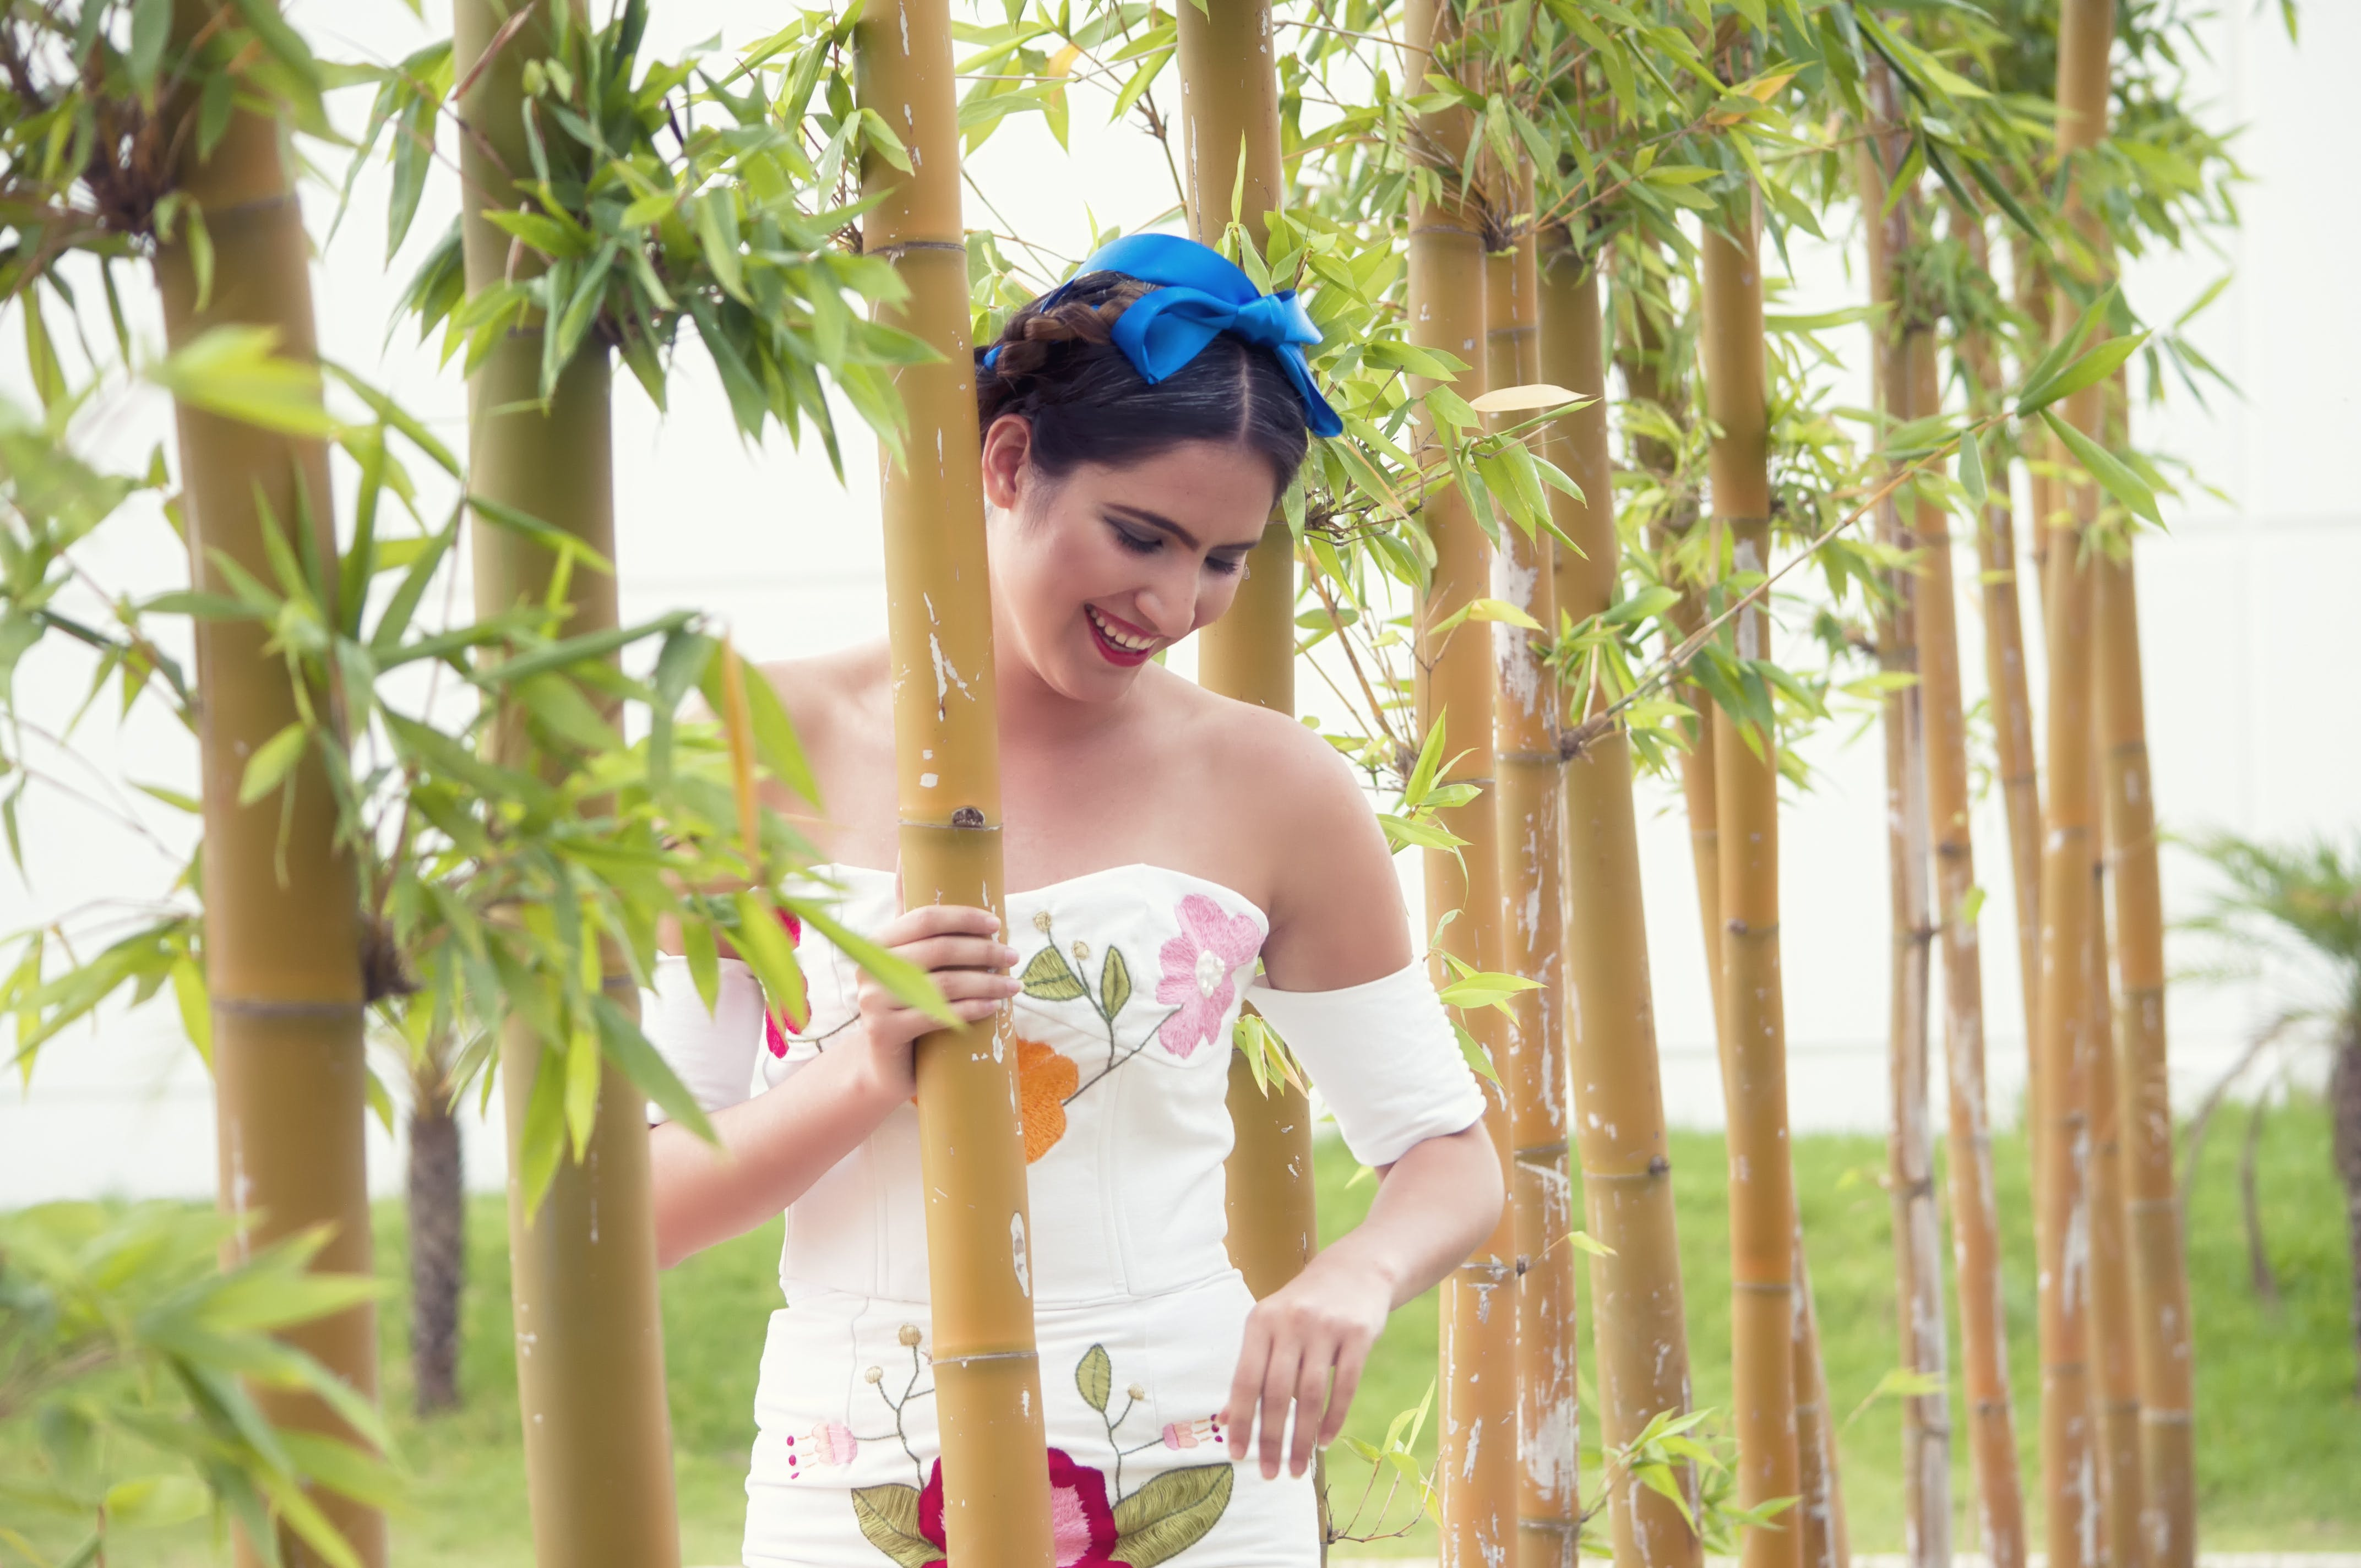 Woman Behind Bamboo Grass